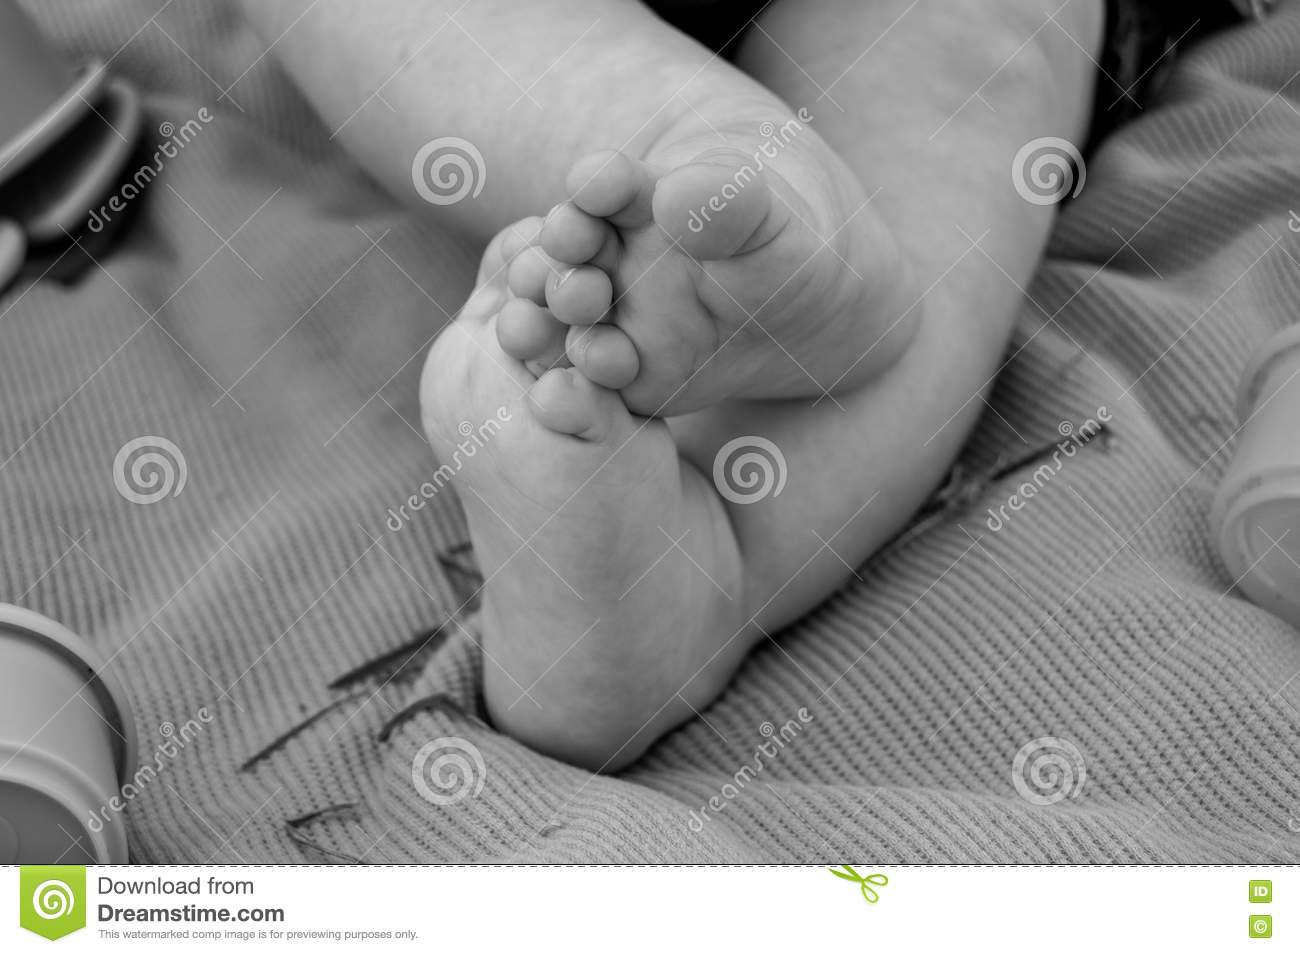 Black and white baby feet